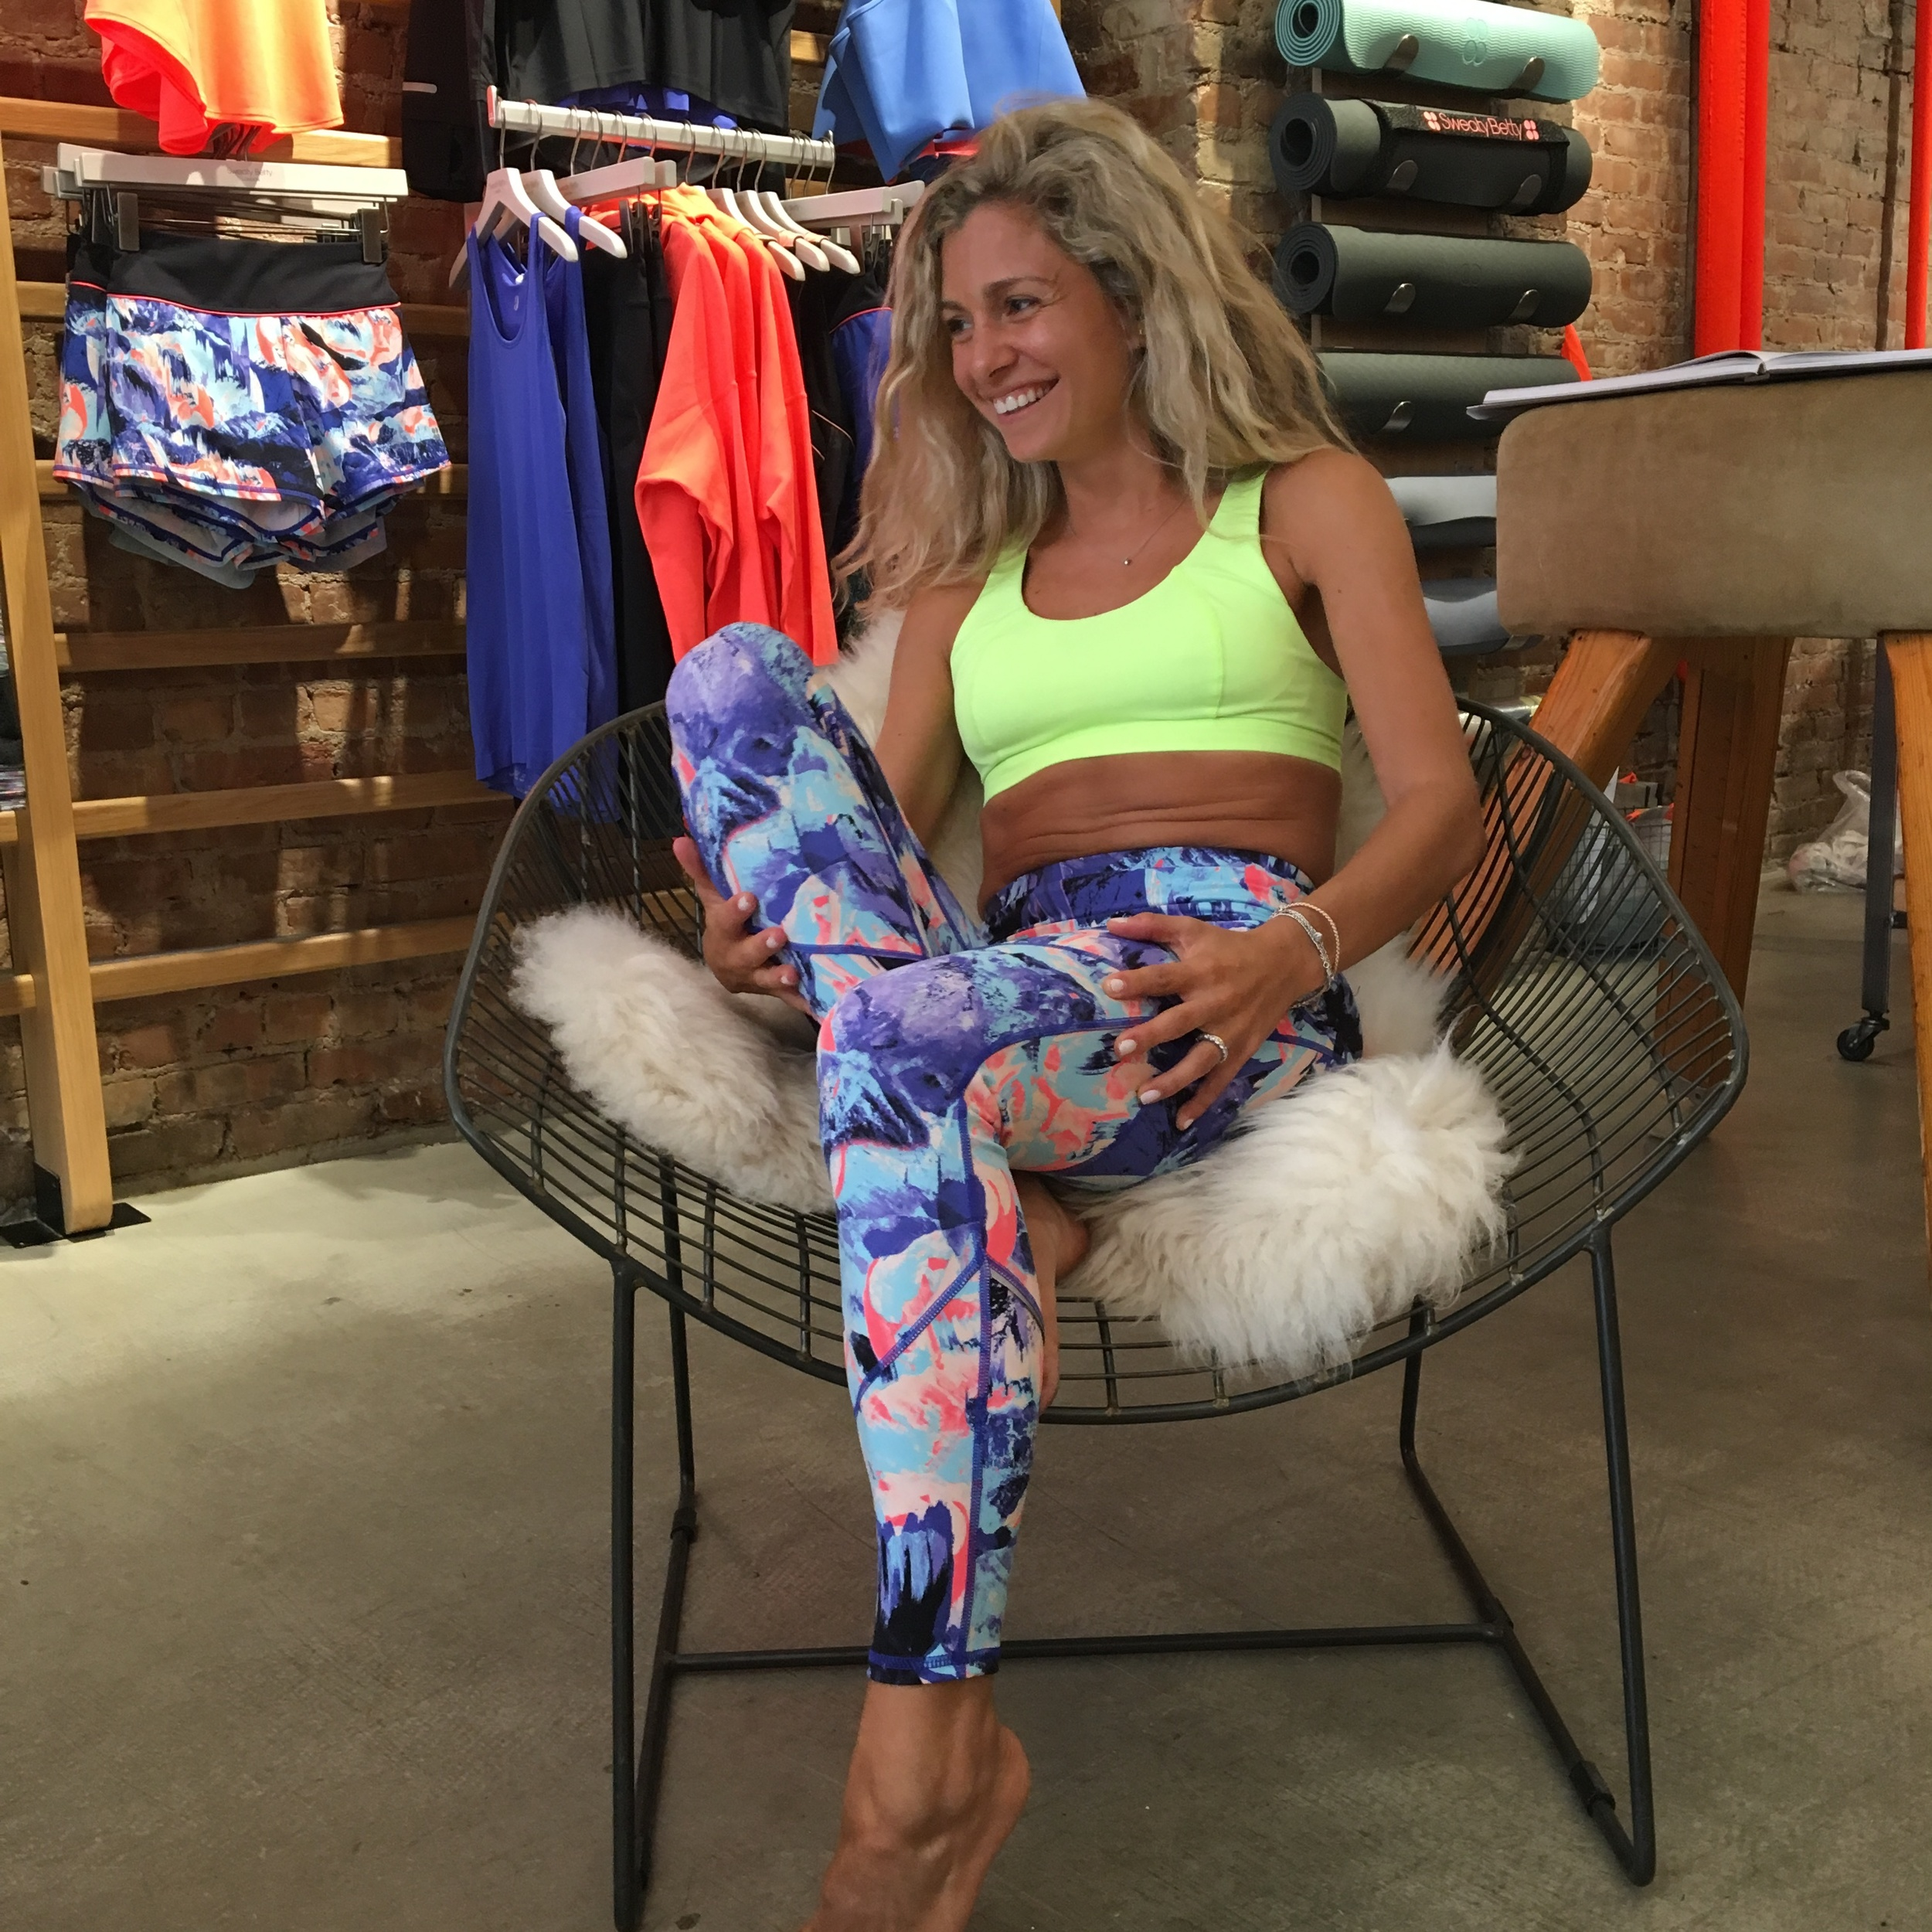 An exclusive sneak peek to the sports bra and leggings you'll be receiving from Sweaty Betty.